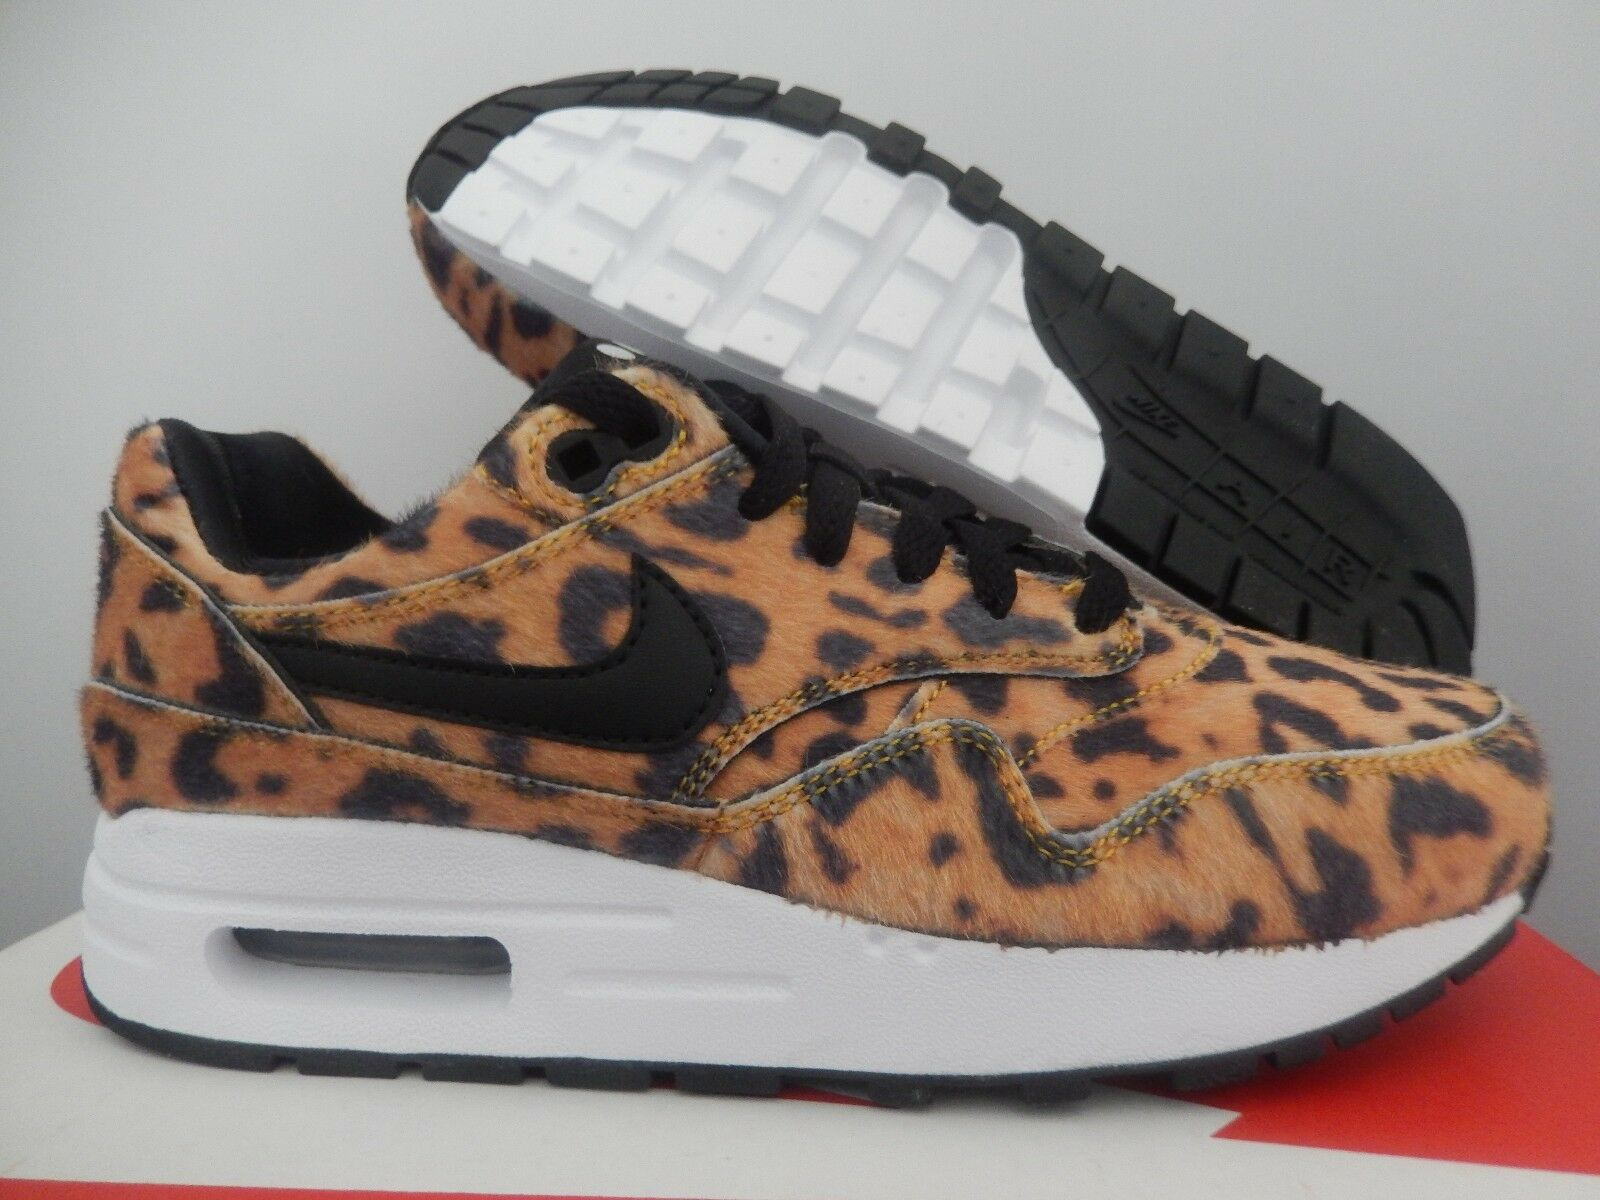 NIKE AIR MAX 1 QS (GS)